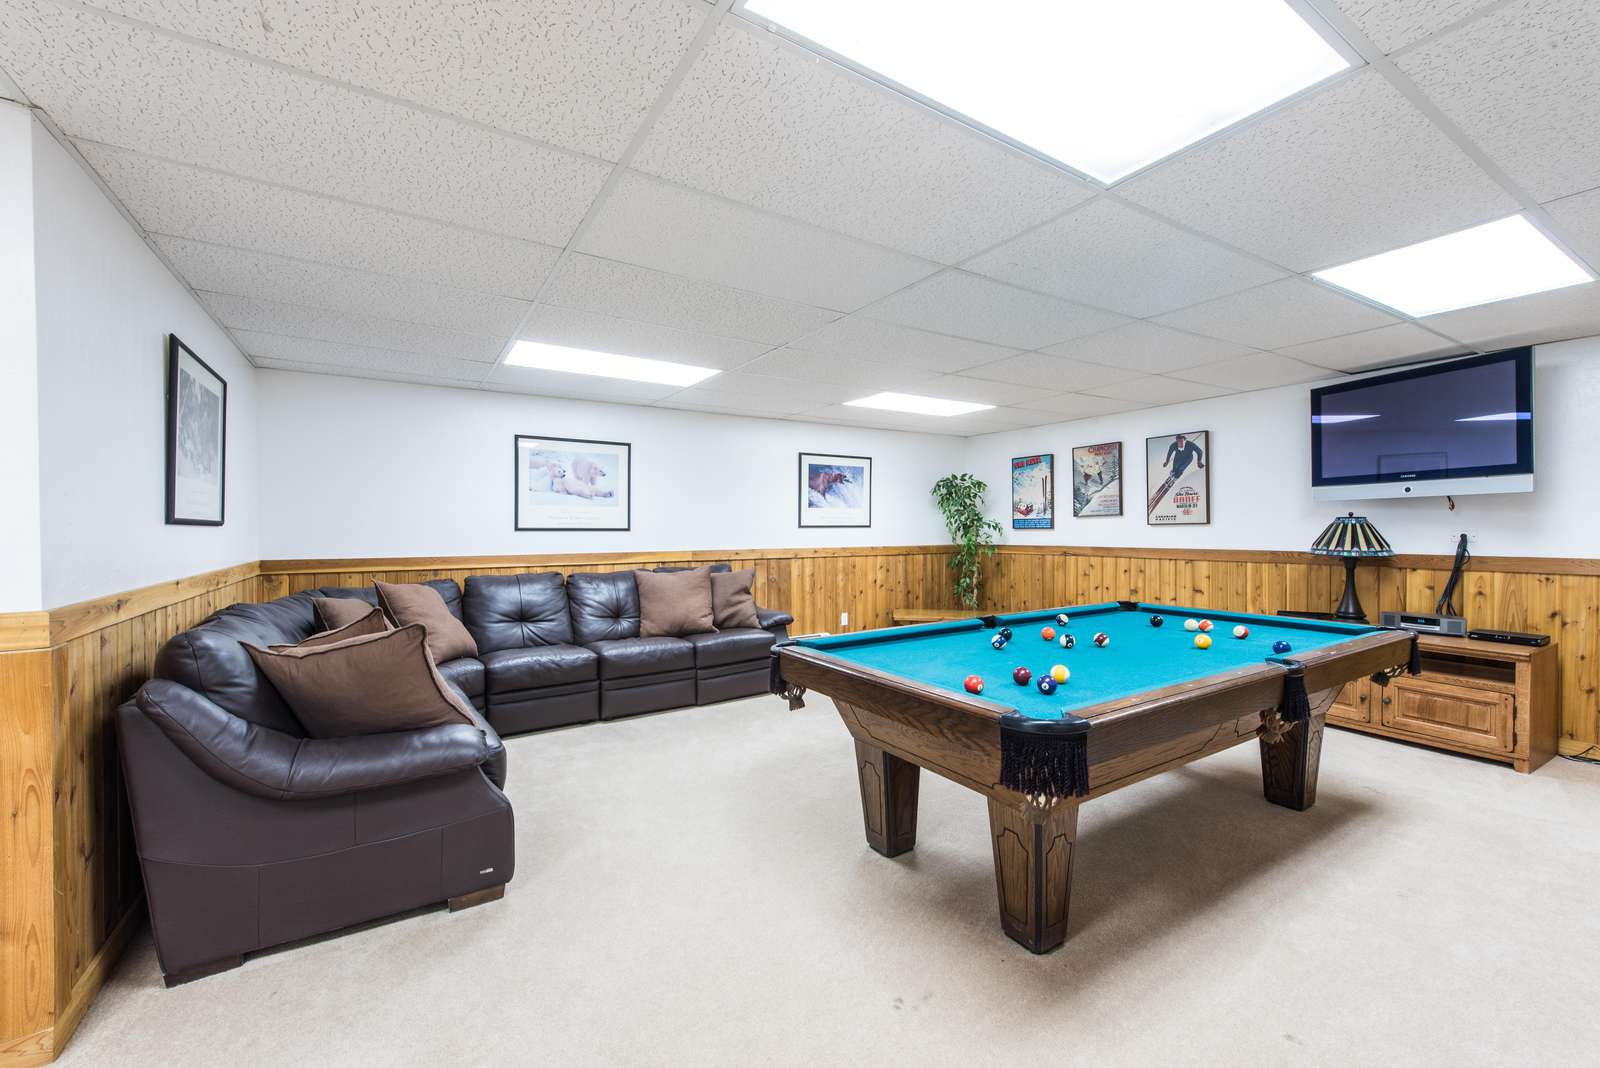 Fun lounge and game room on lower level